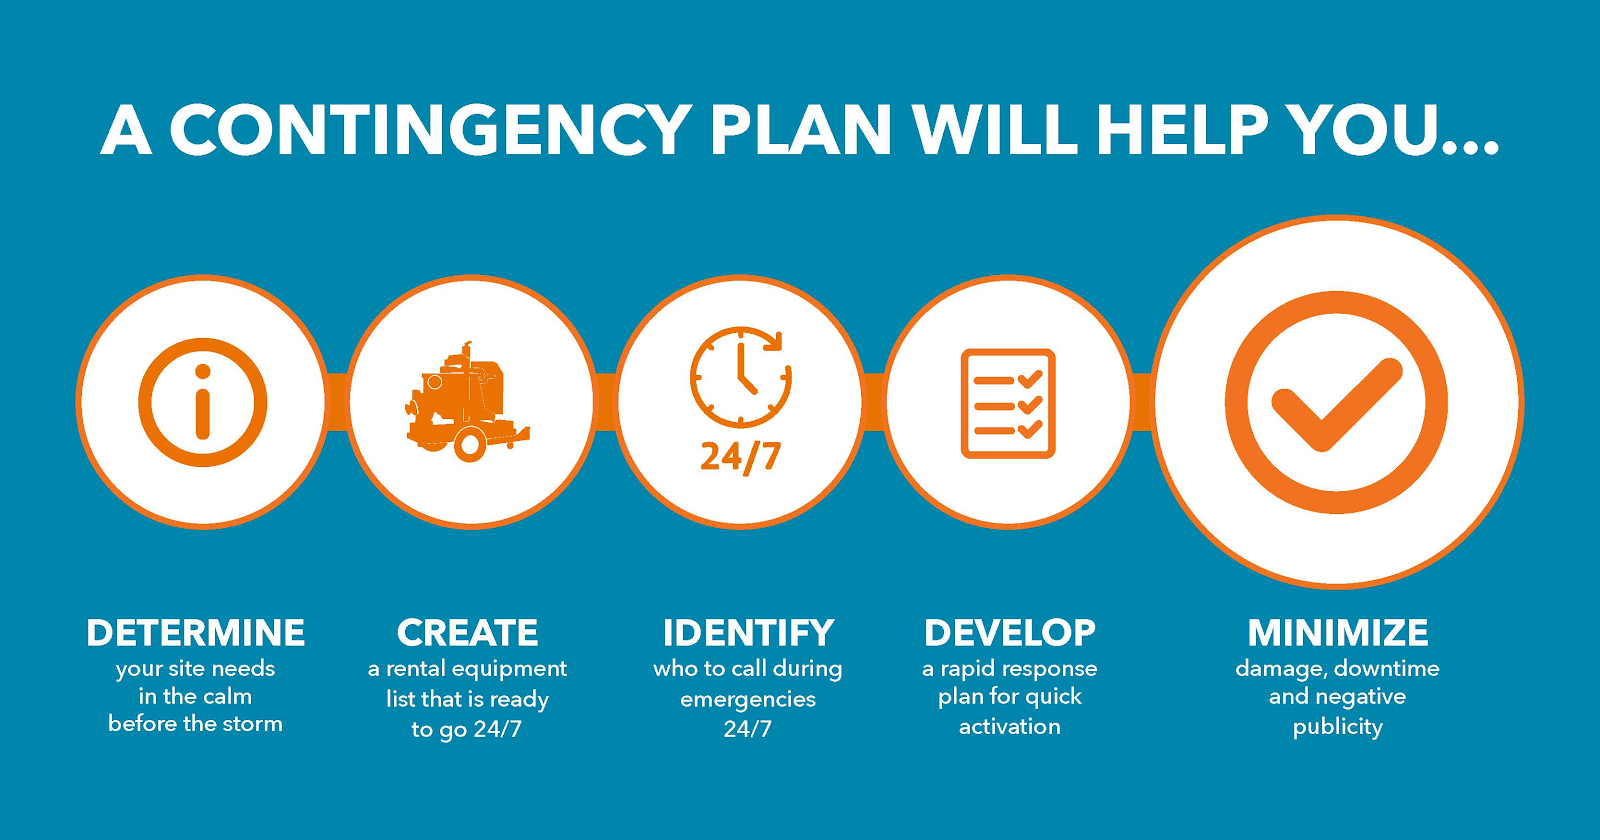 Creation of the contingency plan